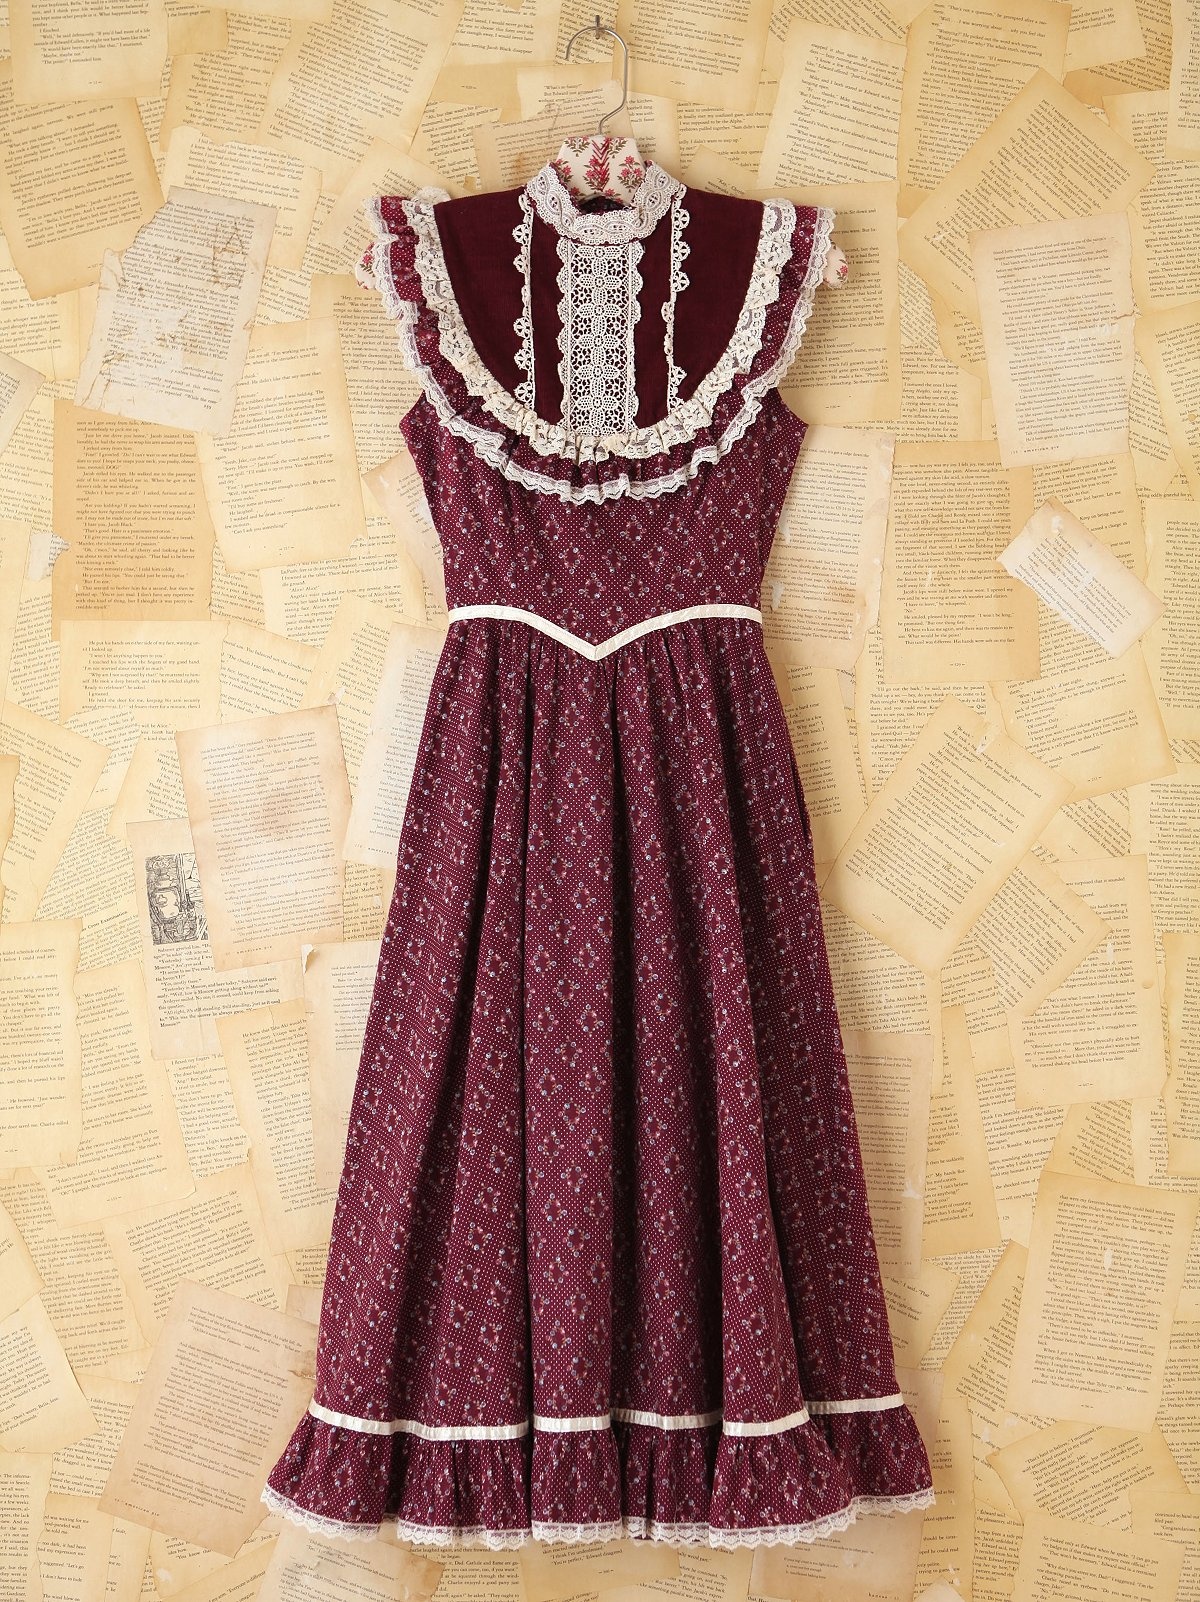 Vintage Maroon Floral Dress